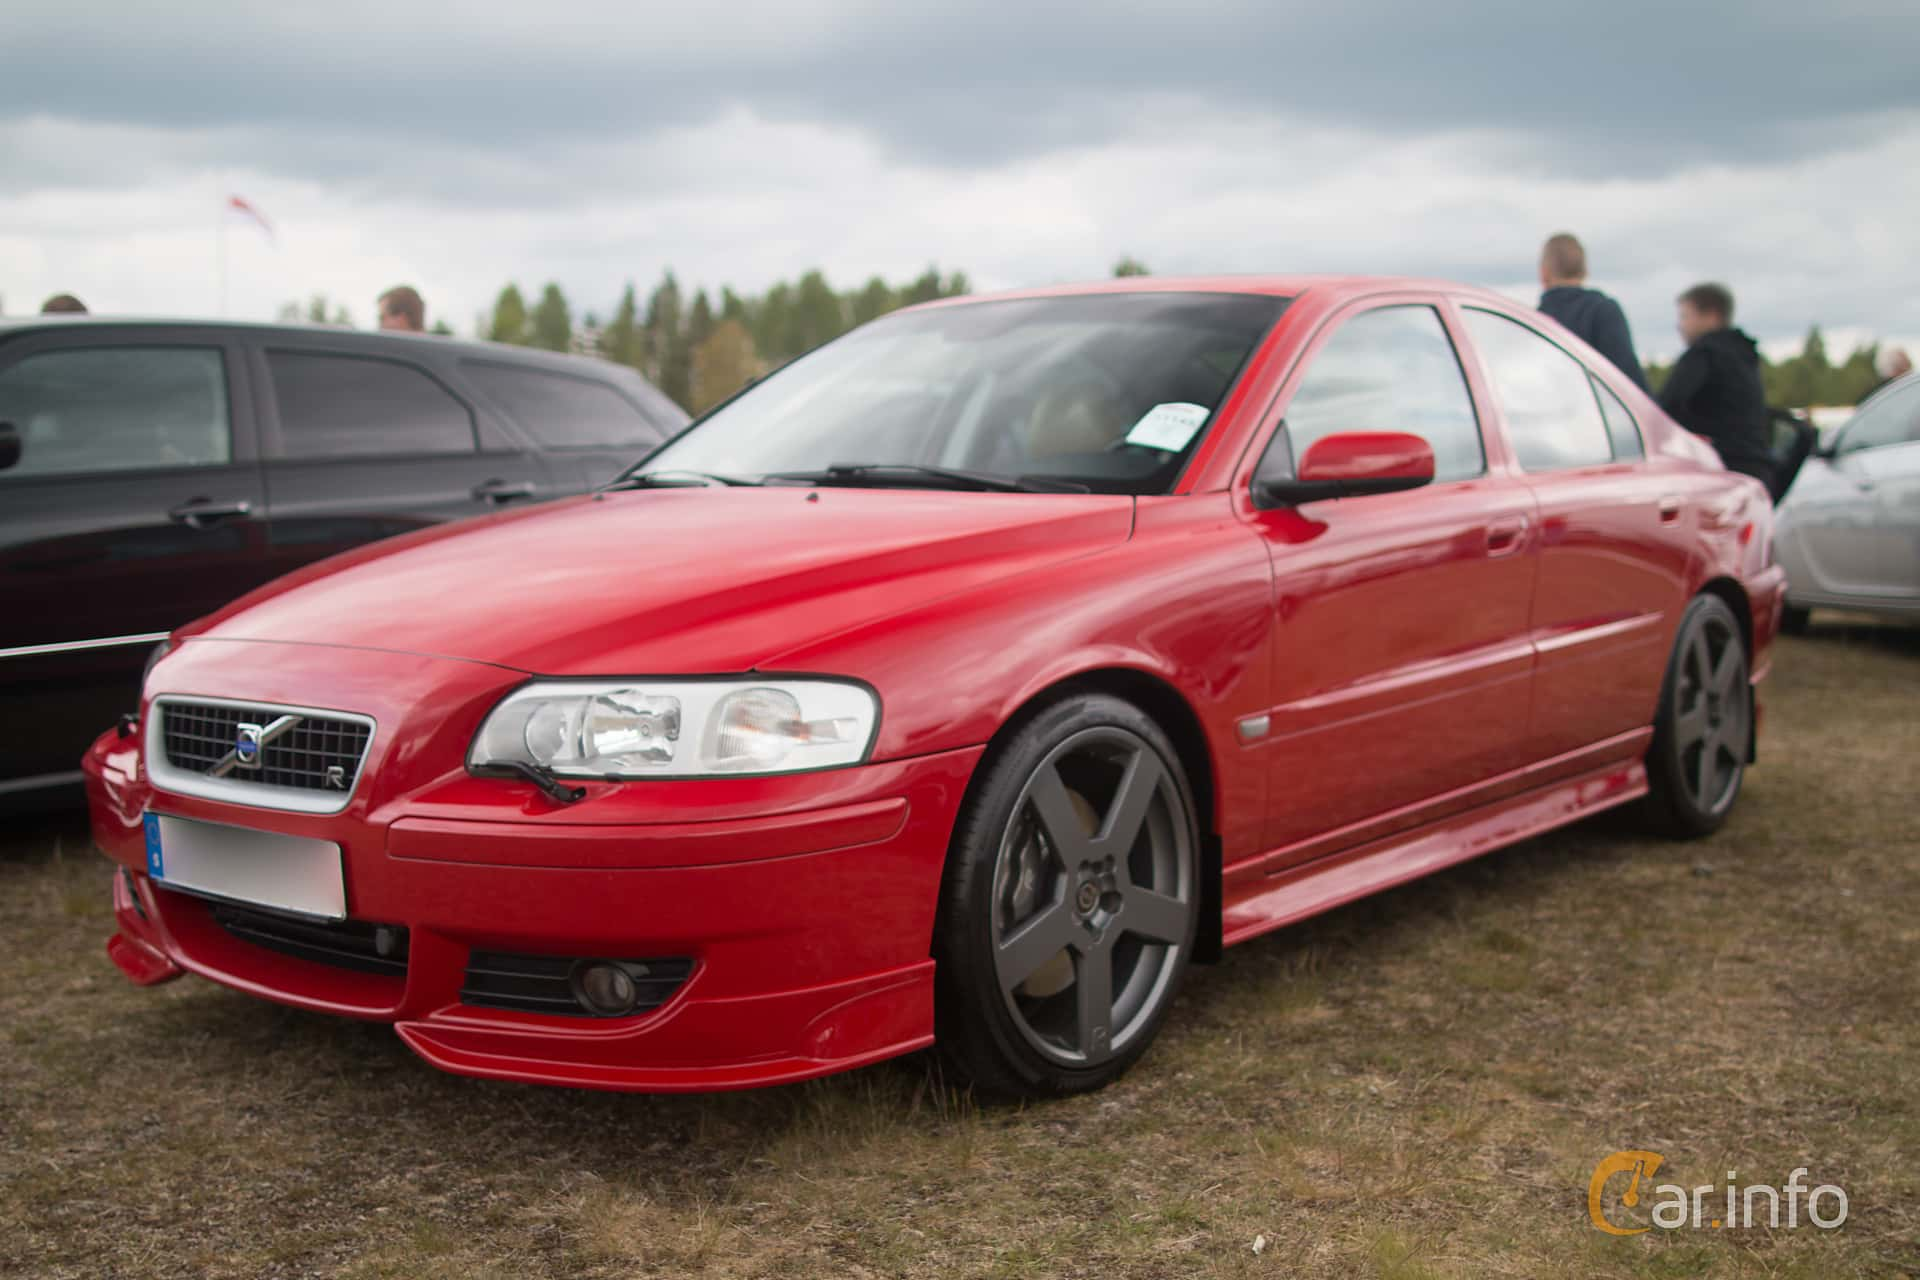 Images of a Volvo S60 R Manual, 300hp, 2005